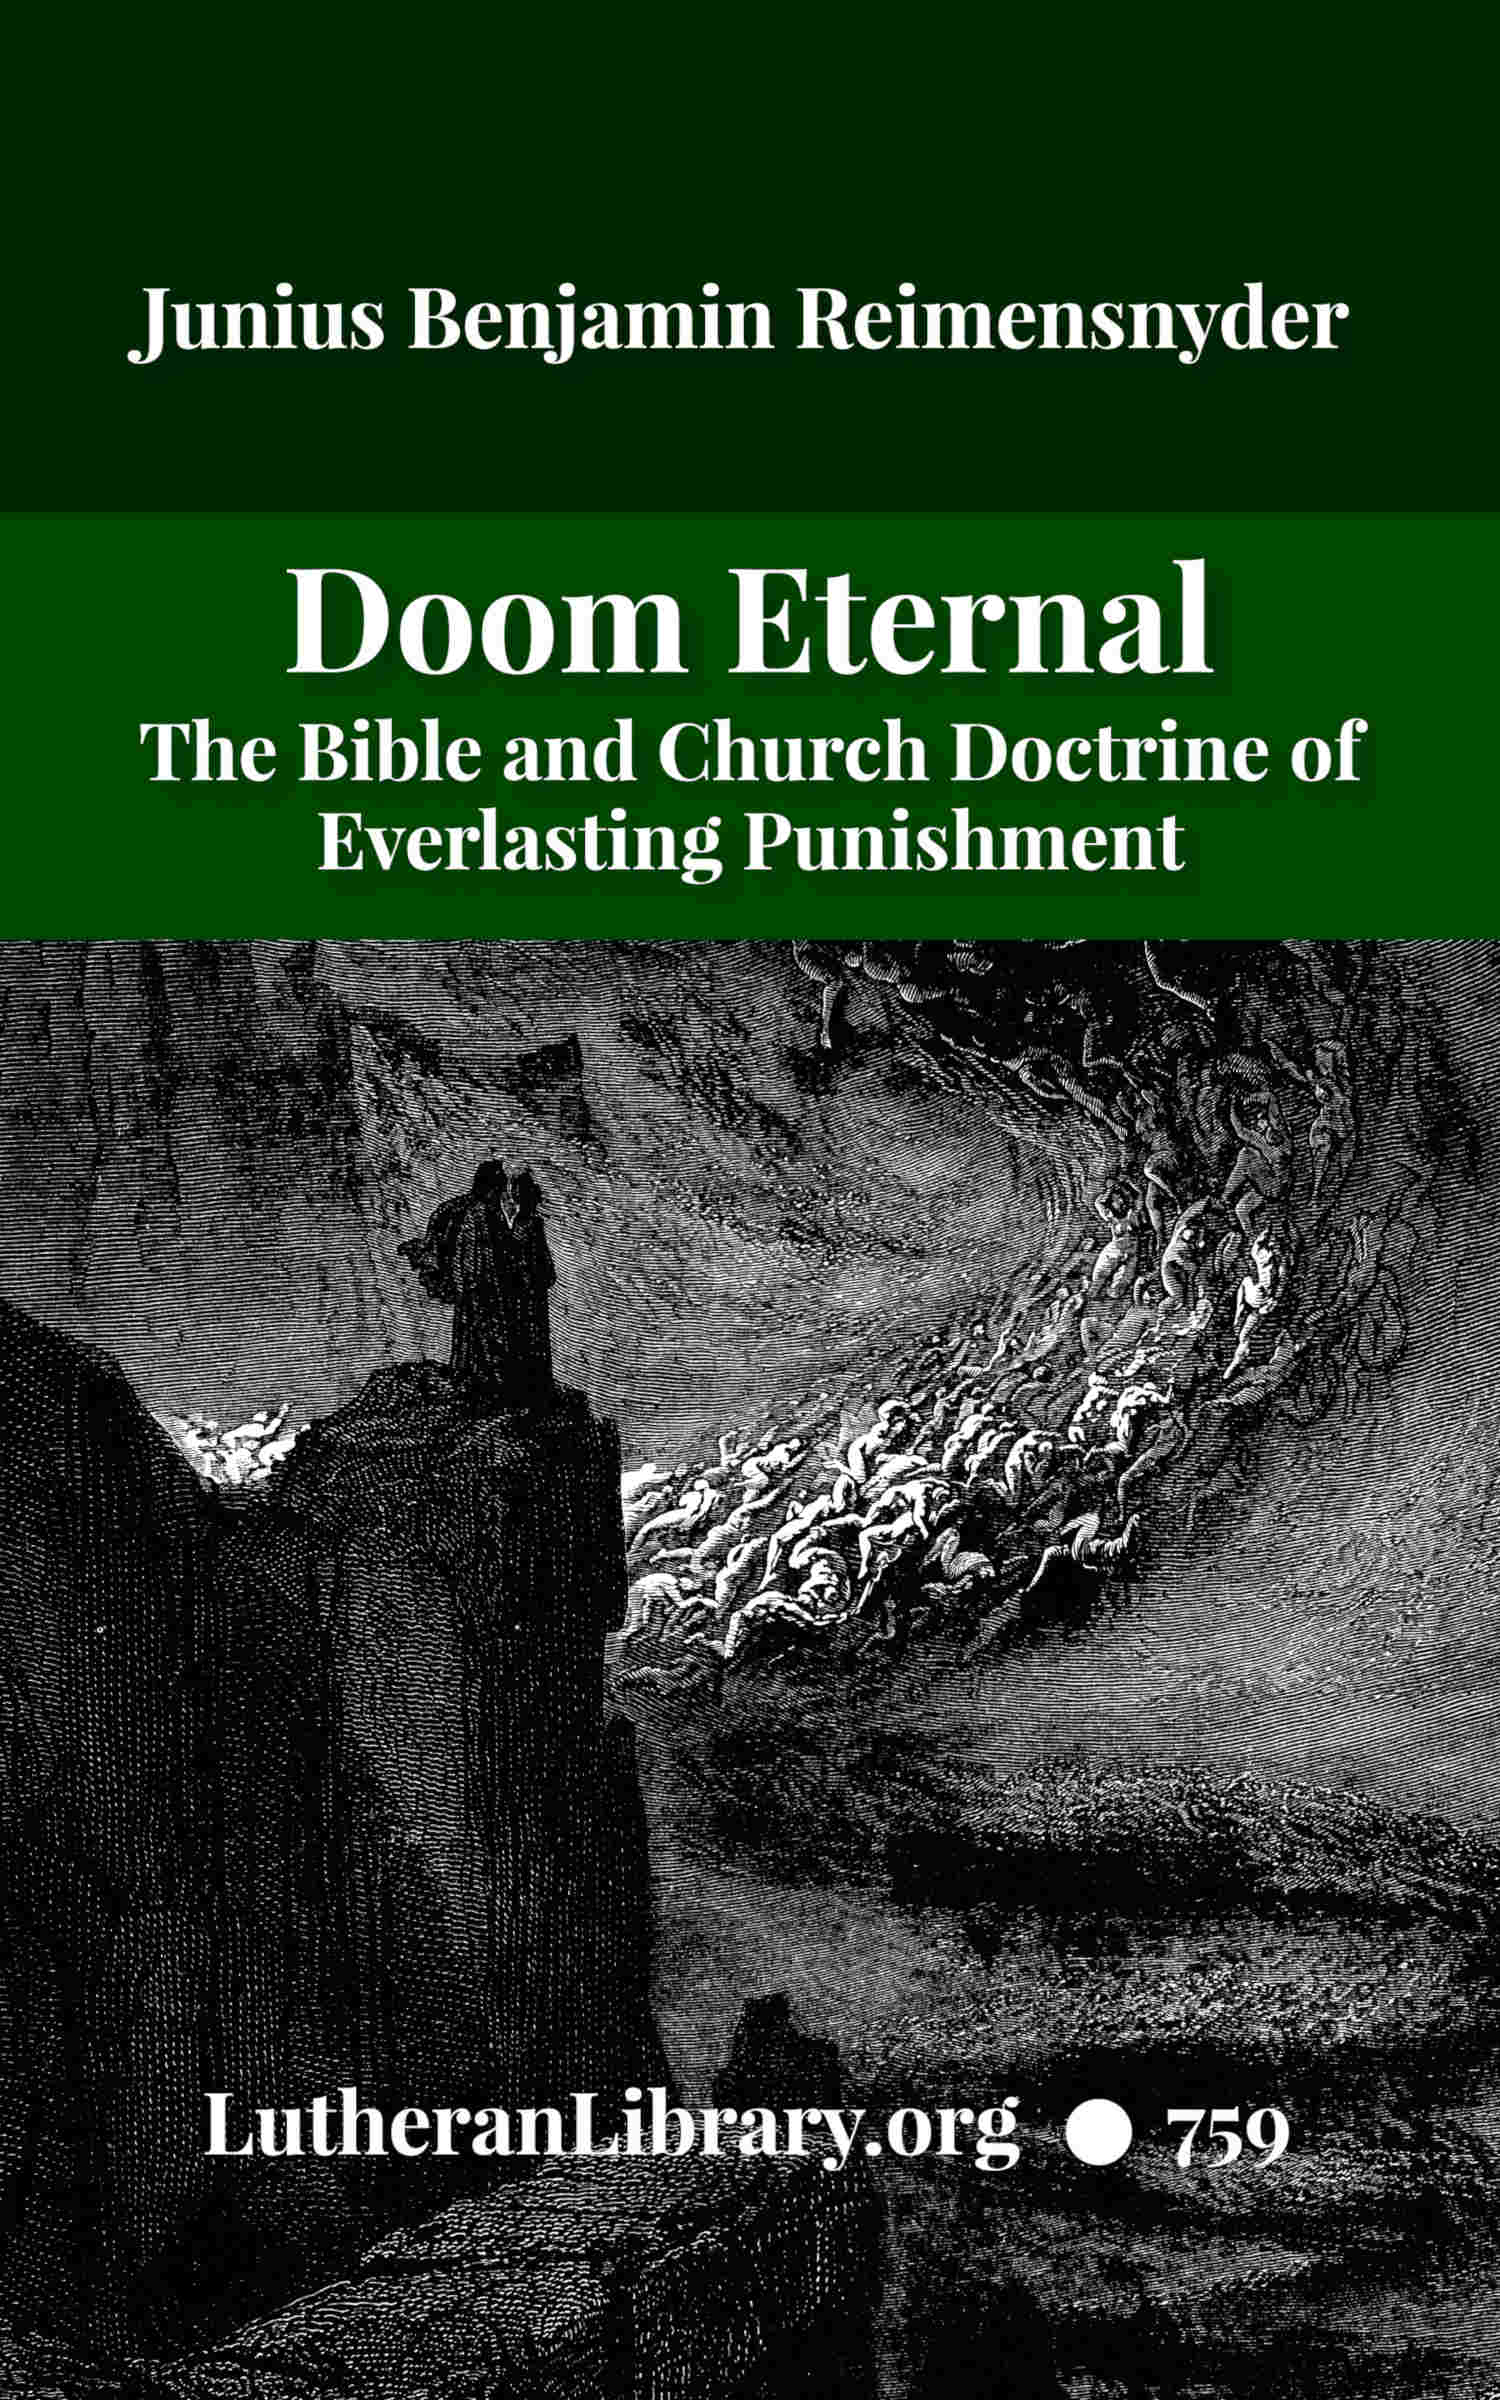 Doom Eternal: The Bible and Church Doctrine of Everlasting Punishment by Junius Benjamin Reimensnyder